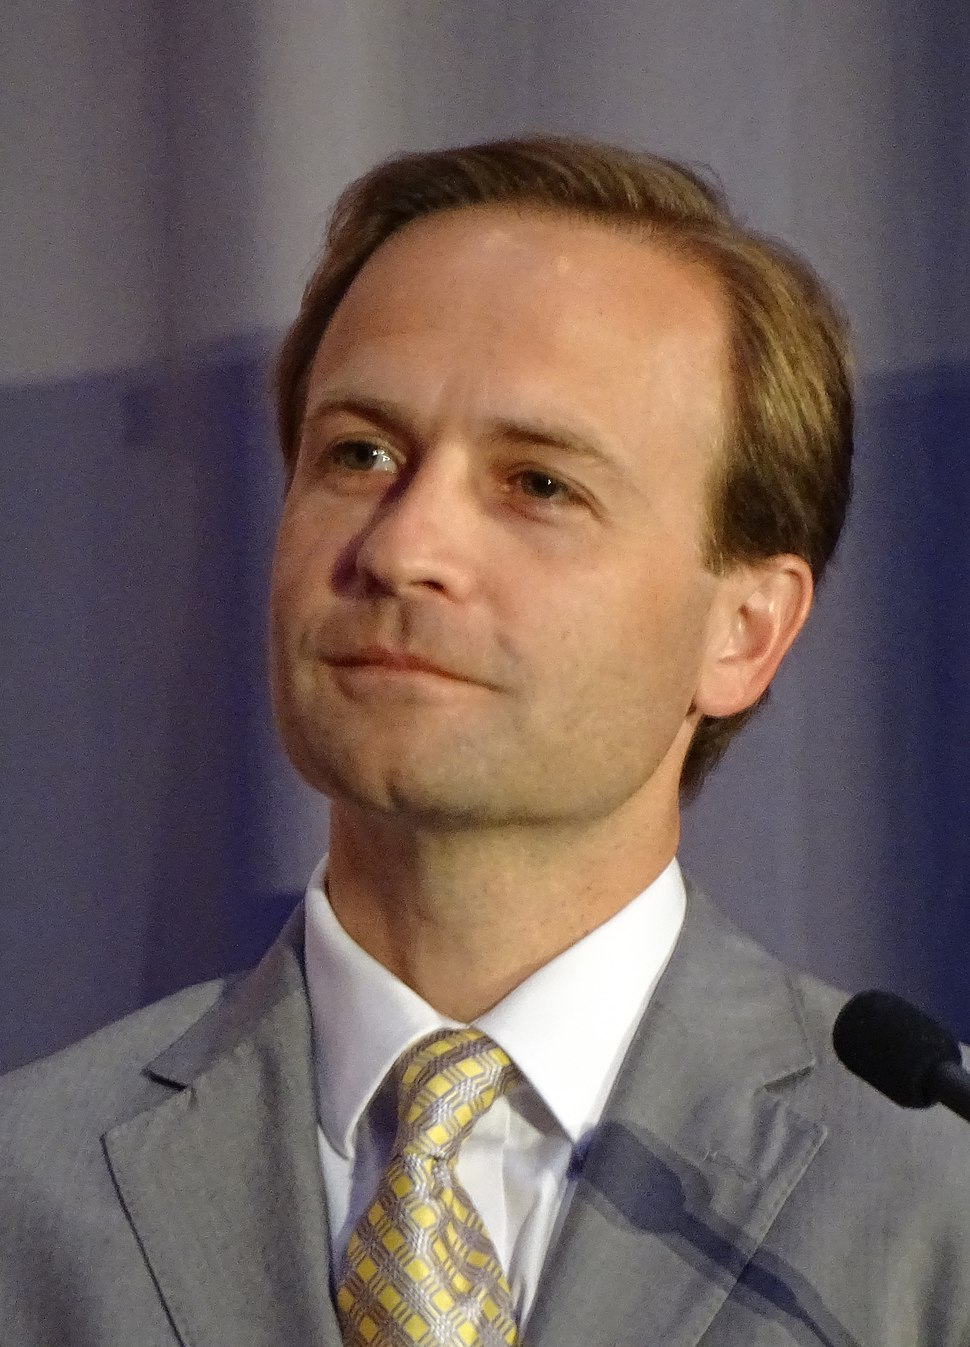 Michigan Lt. Governor Brian Calley in Detroit 2016